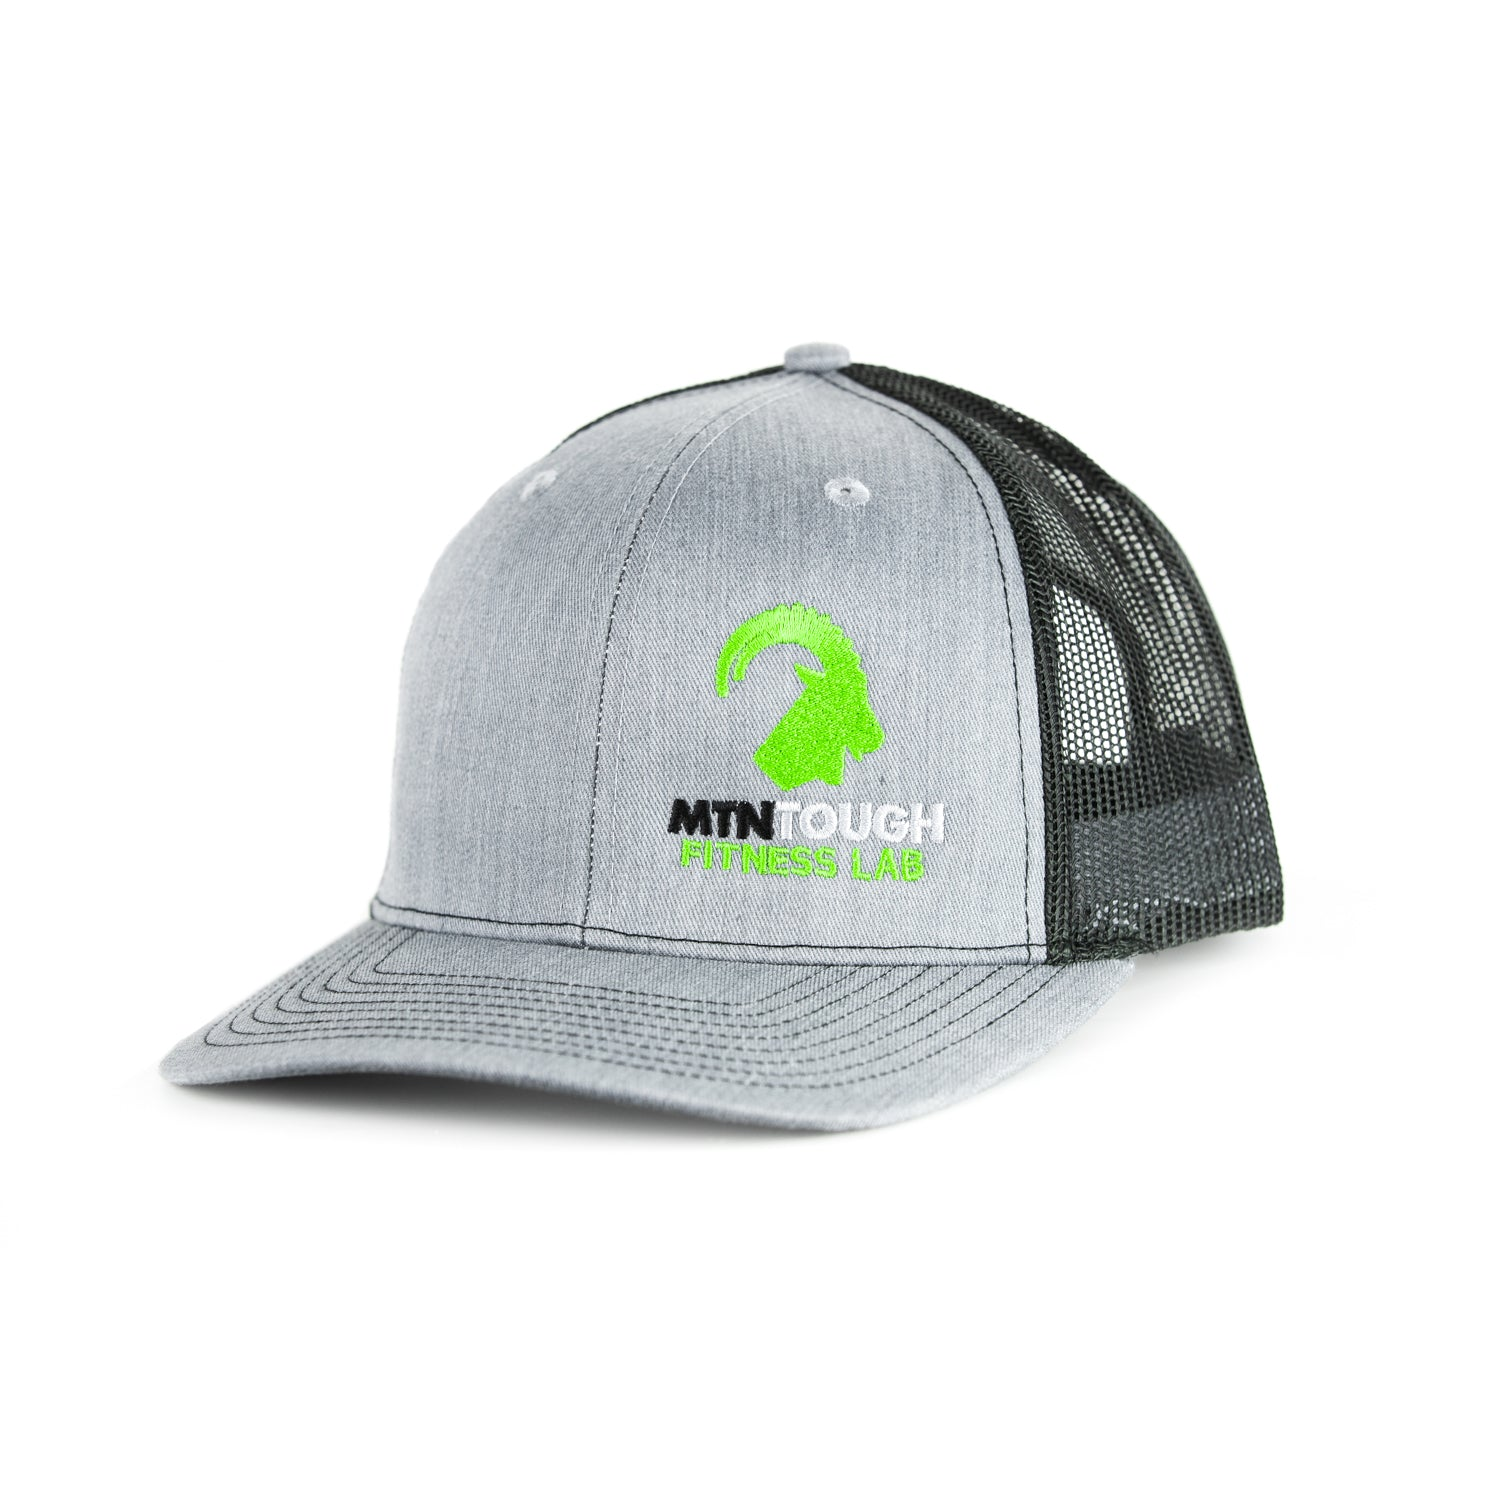 MTNTOUGH HAT - Gray/Black